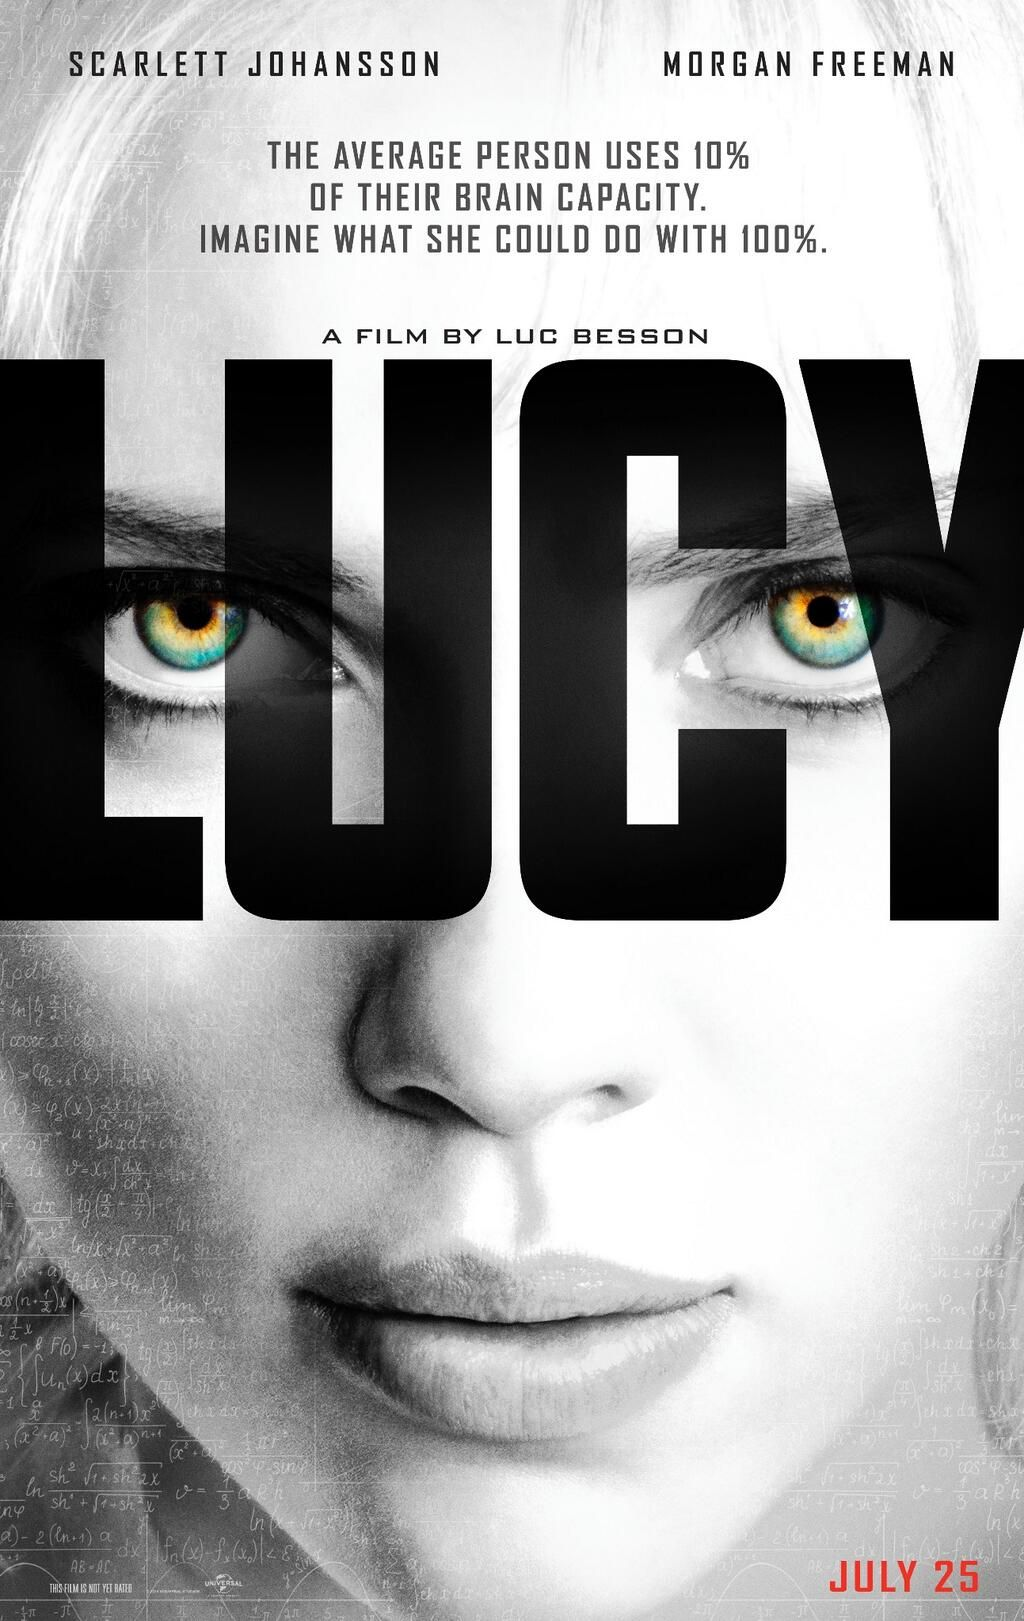 On July 25th, Lucy will show us what is possible at 100%. #LucyMovie pic.twitter.com/NqUjJvzvAd